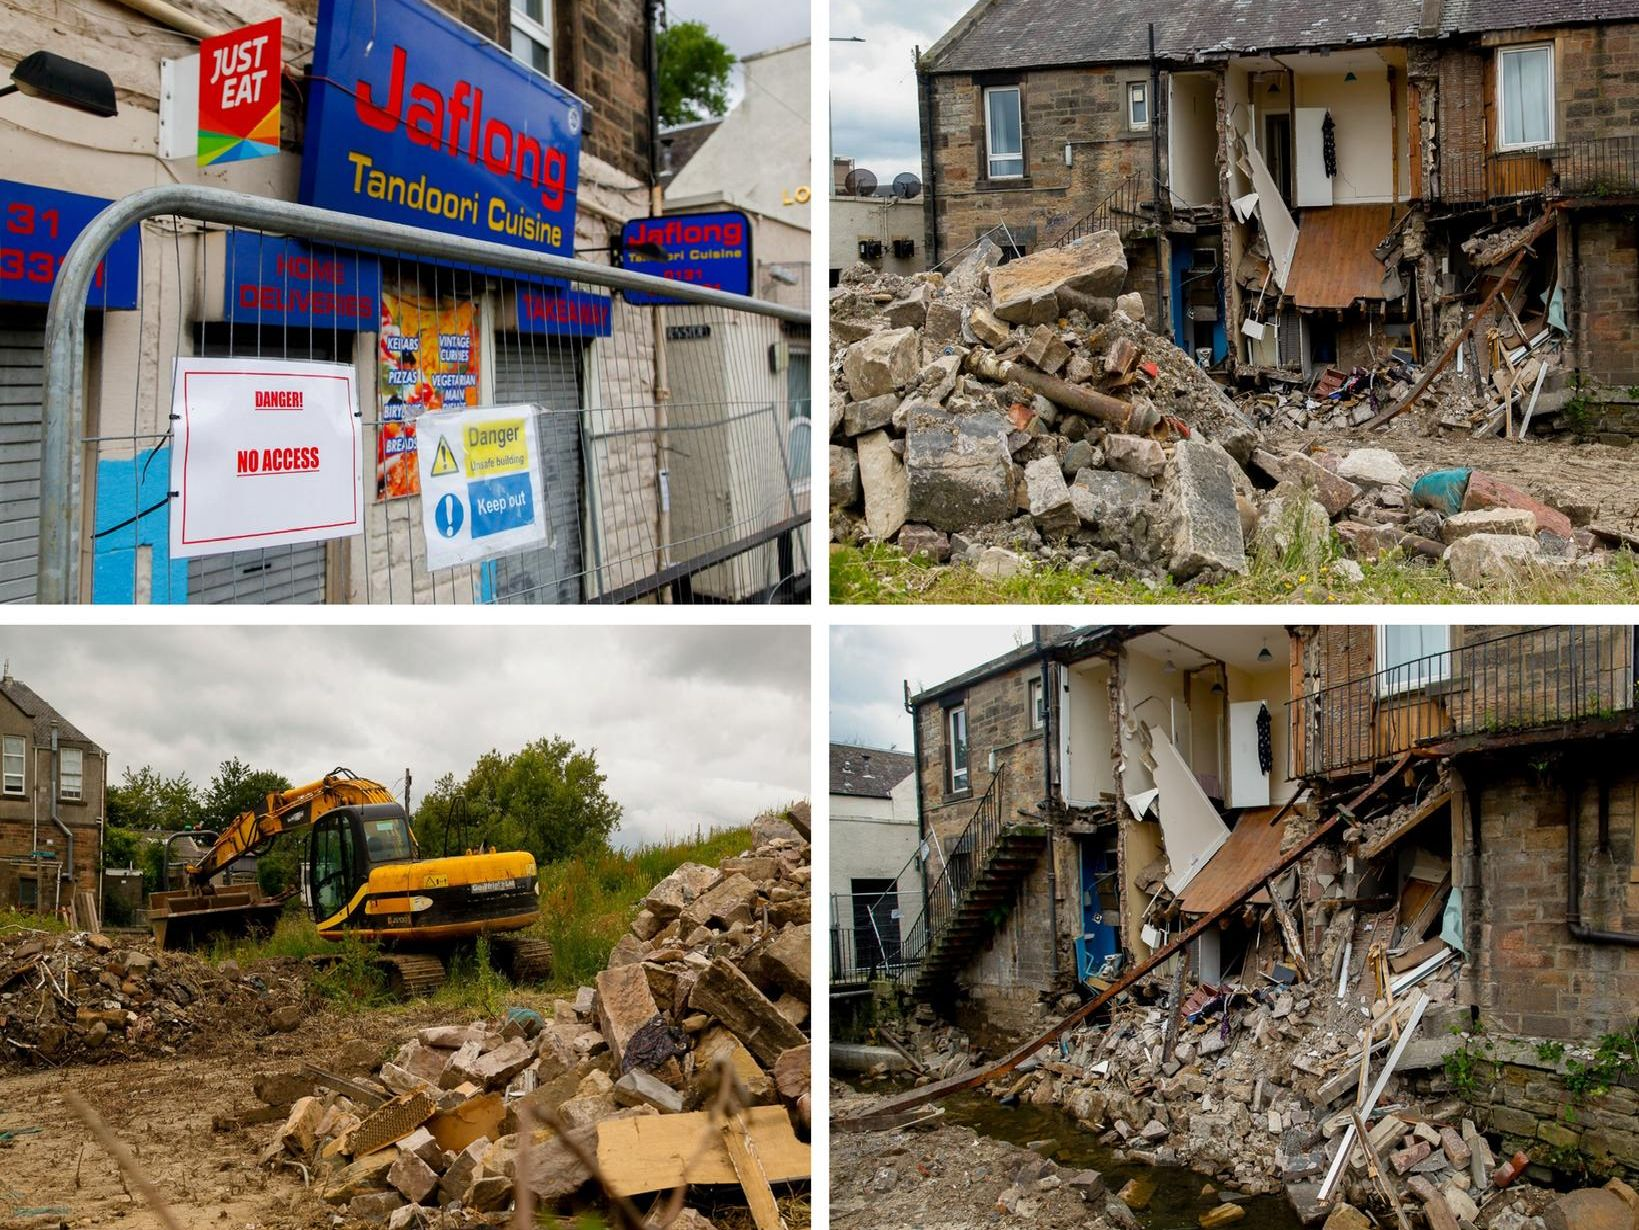 The scale of the destruction has left families out of work and homes